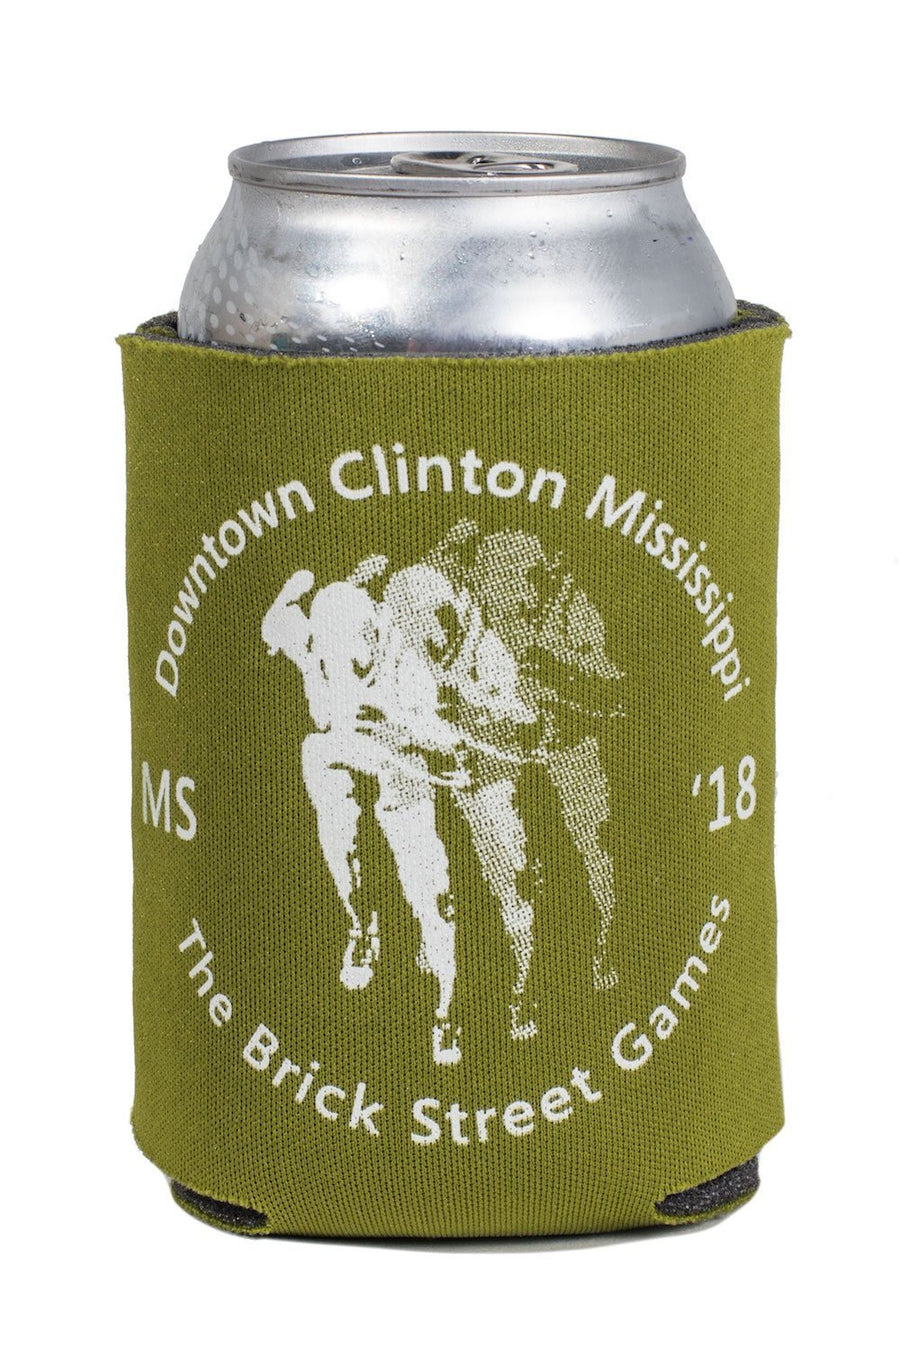 The Brick Street Games Koozie